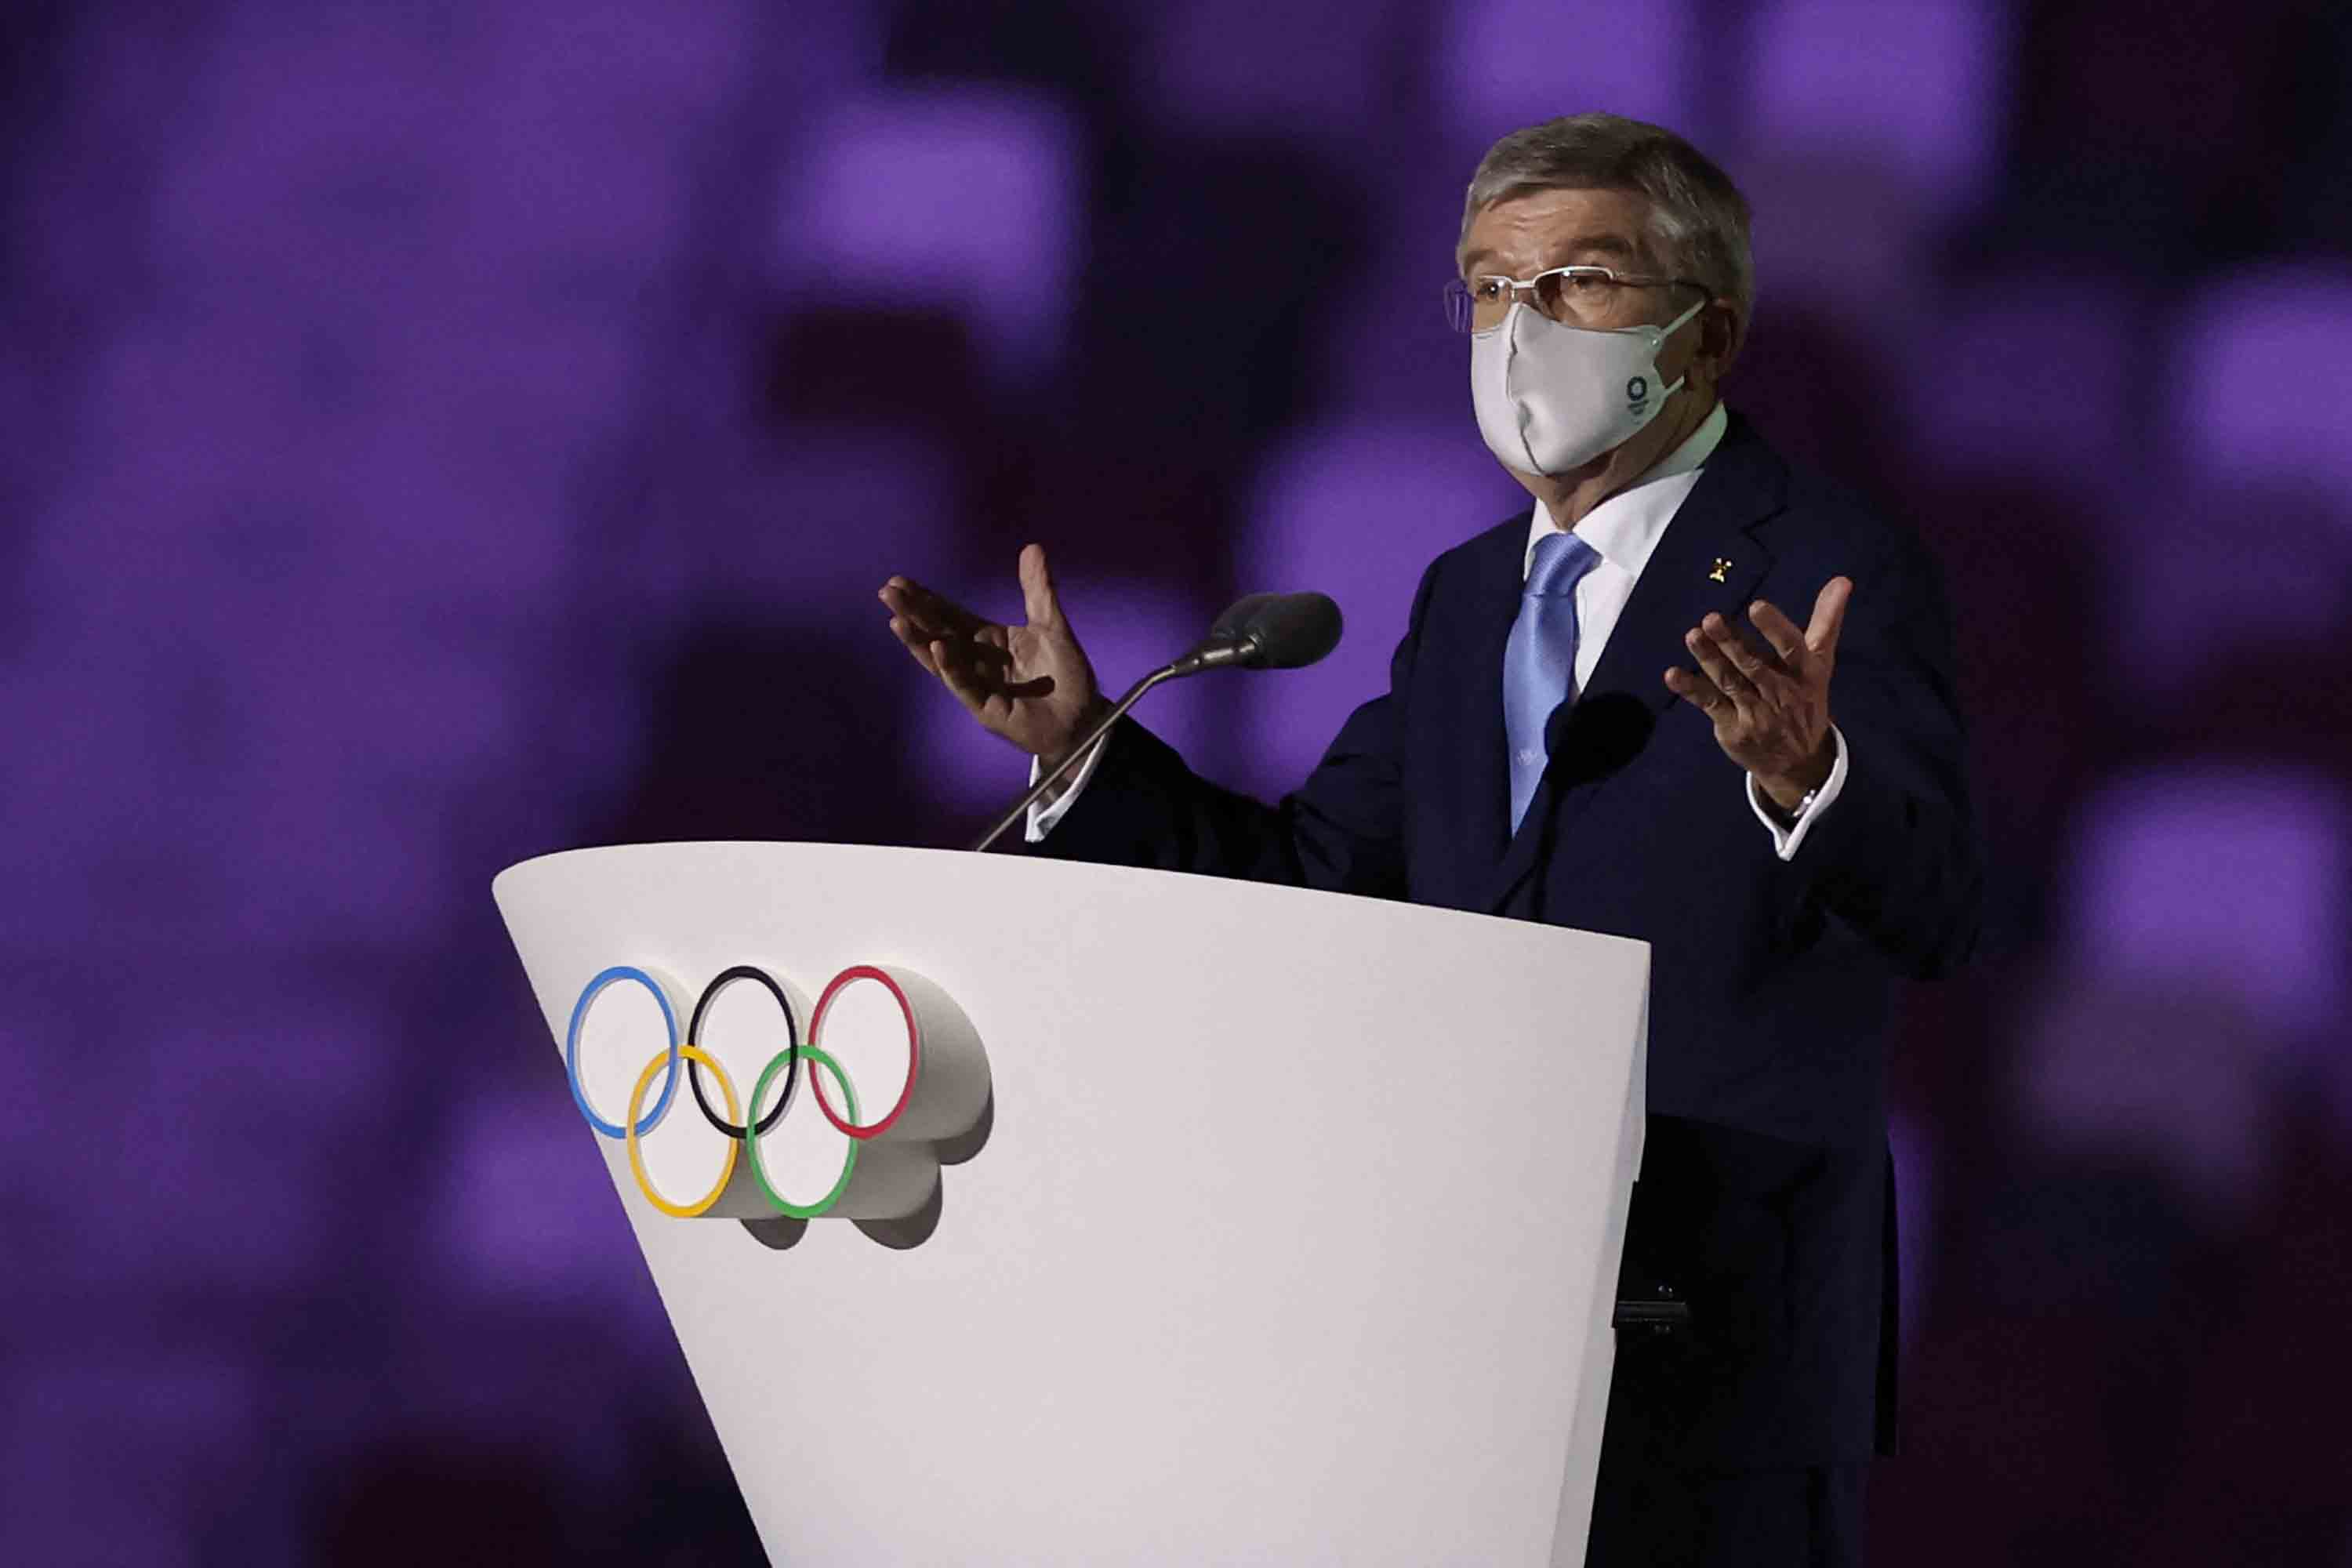 President of the International Olympic Committee (IOC) Thomas Bach speaksduring the Opening Ceremony.